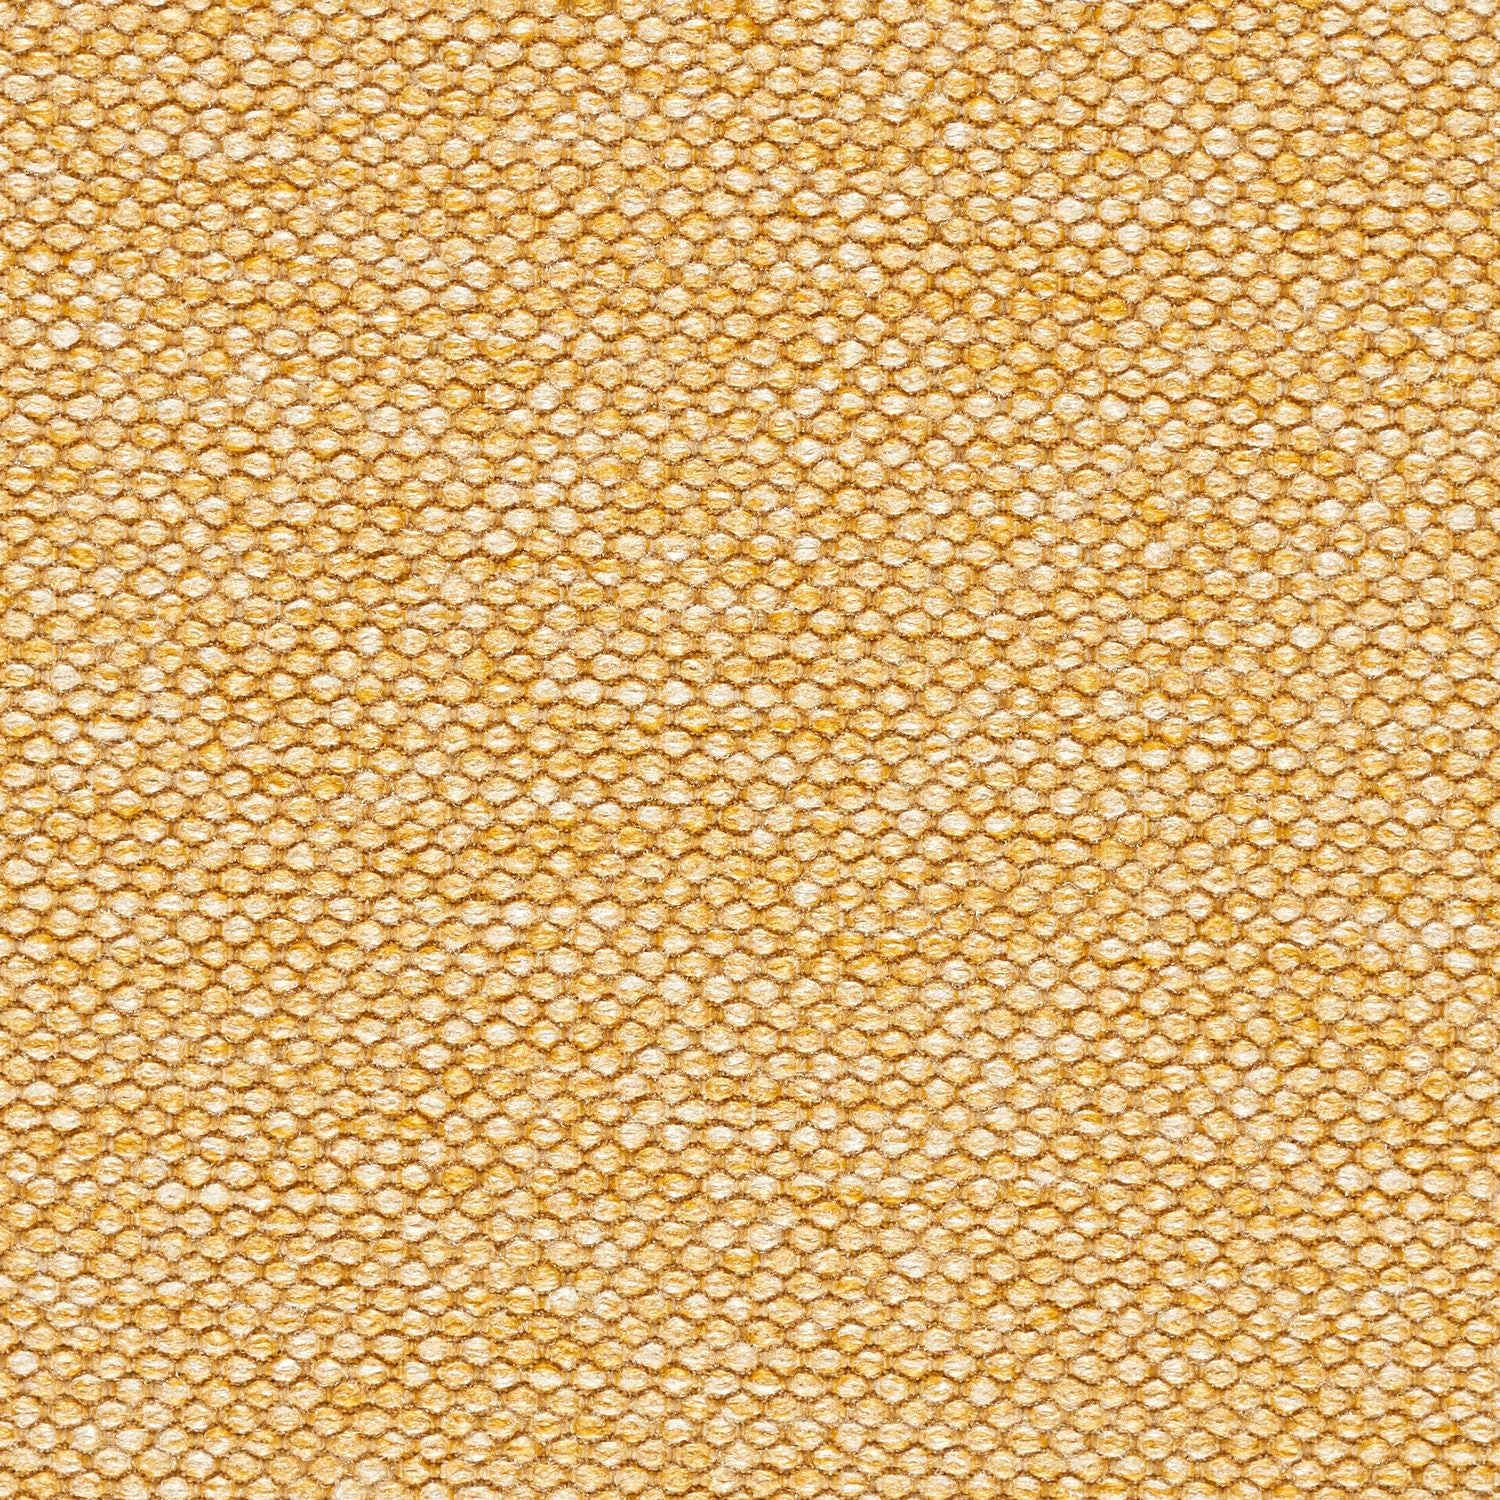 Digi Tweed - Sundew Tweed - 4058 - 12